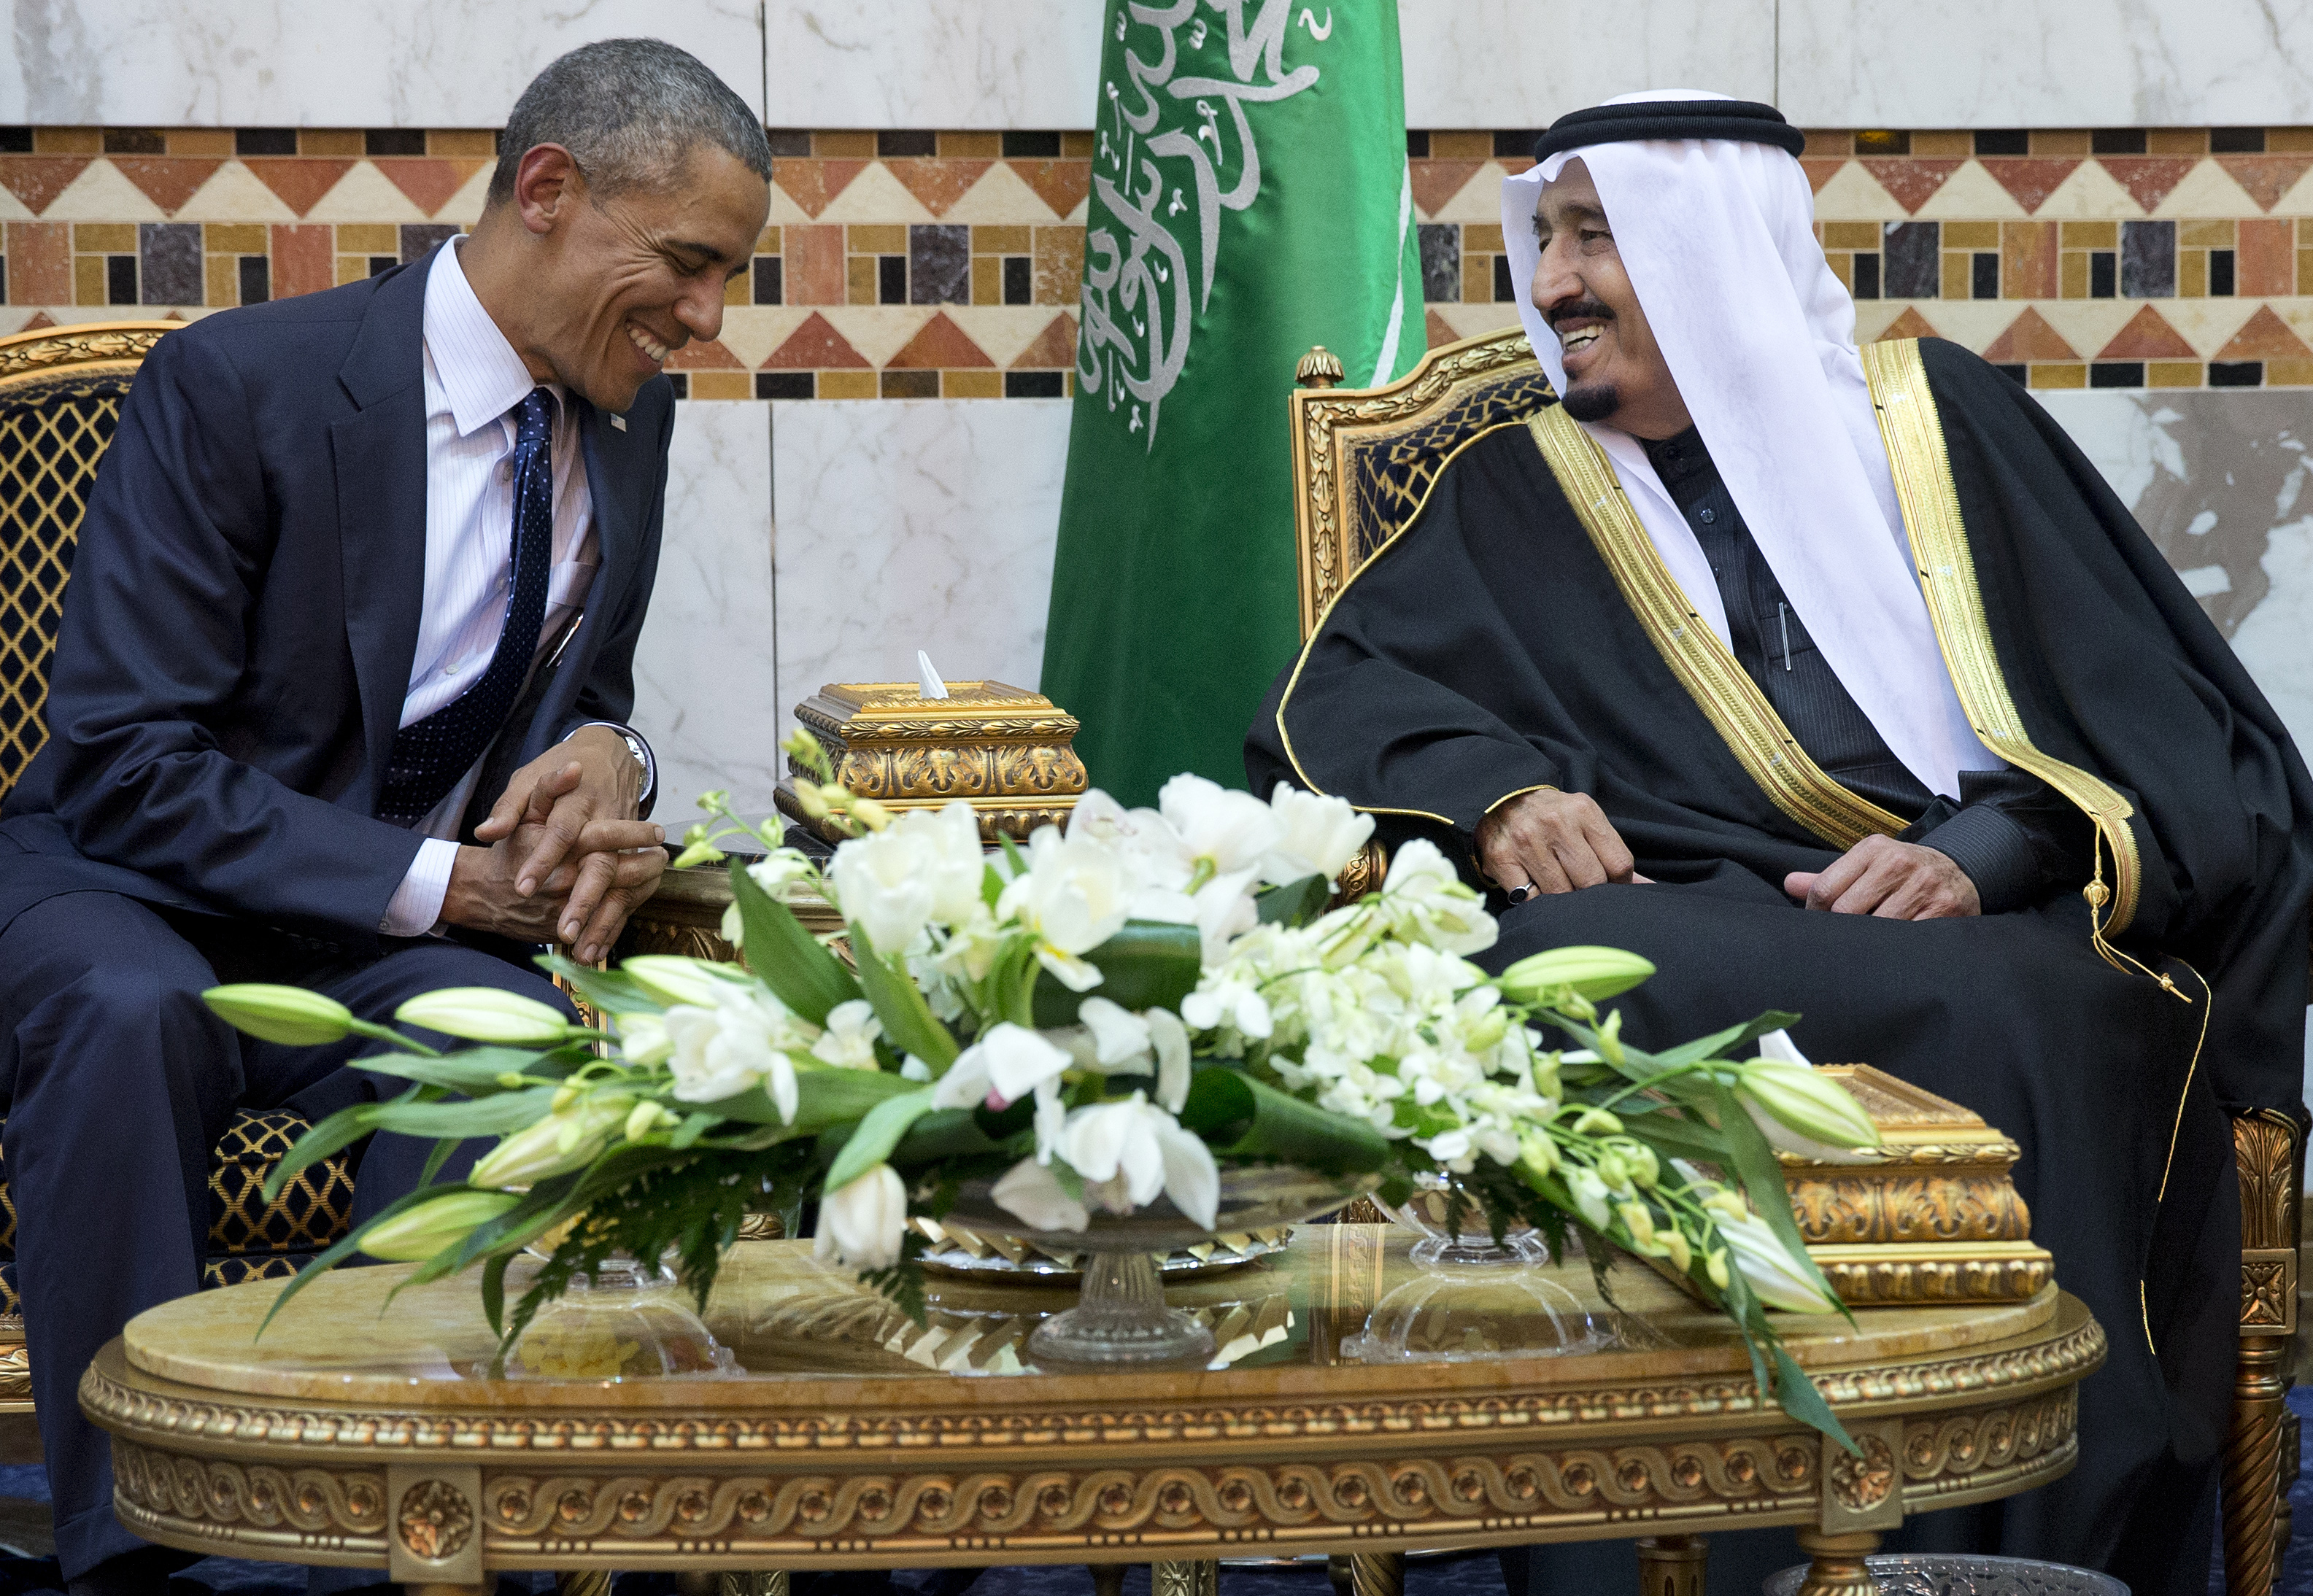 In Saudi visit, Obama faces 'curveball' in ties with kingdom